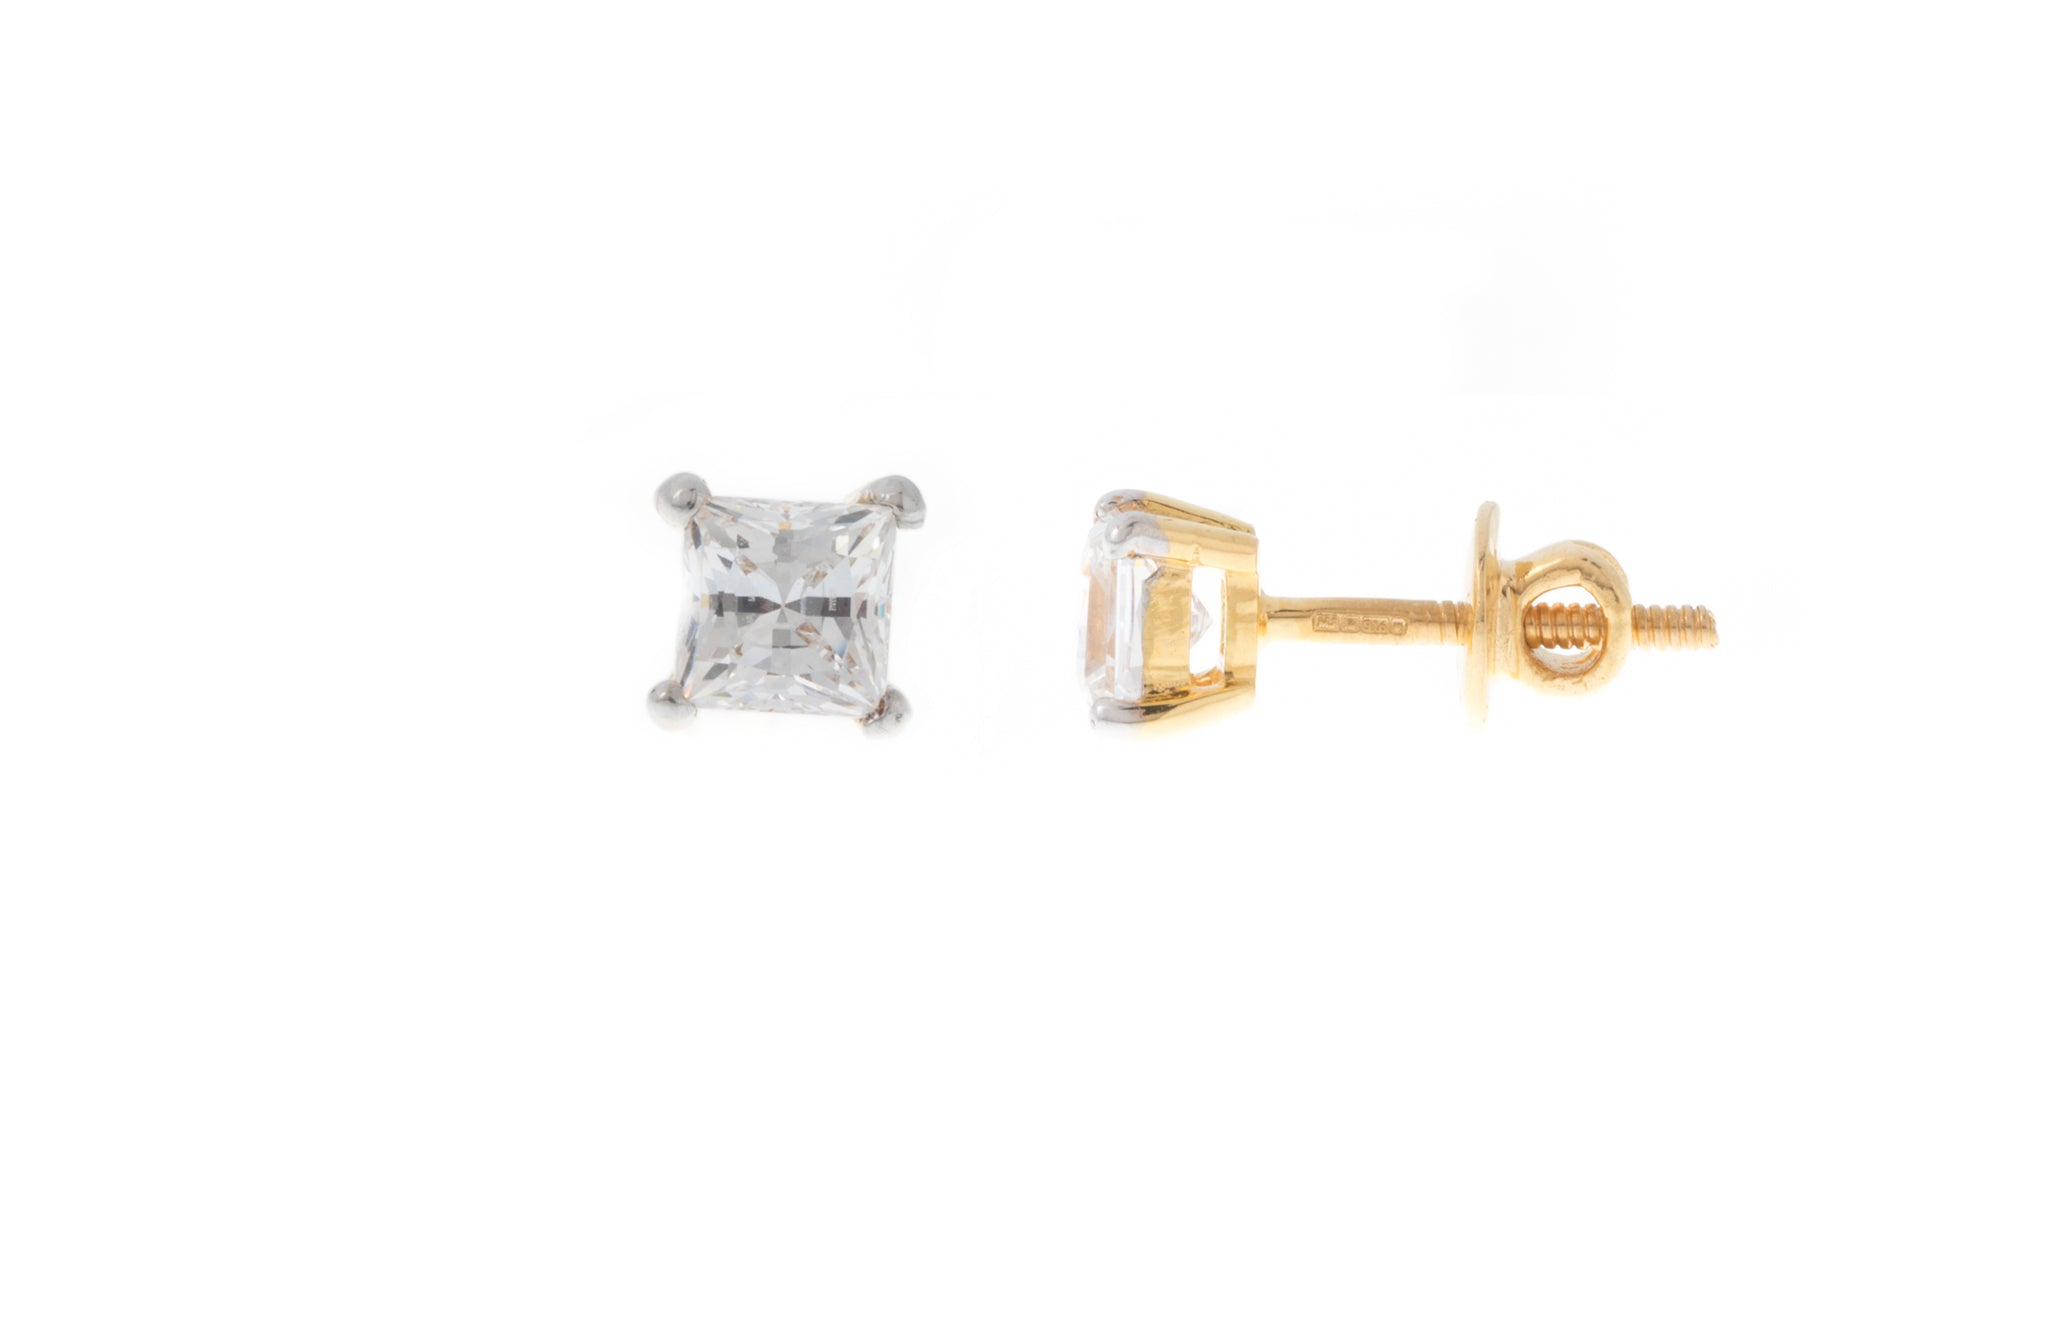 22ct Gold Stud Earrings set with a Swarovski Zirconia (1.89g) PR4MM